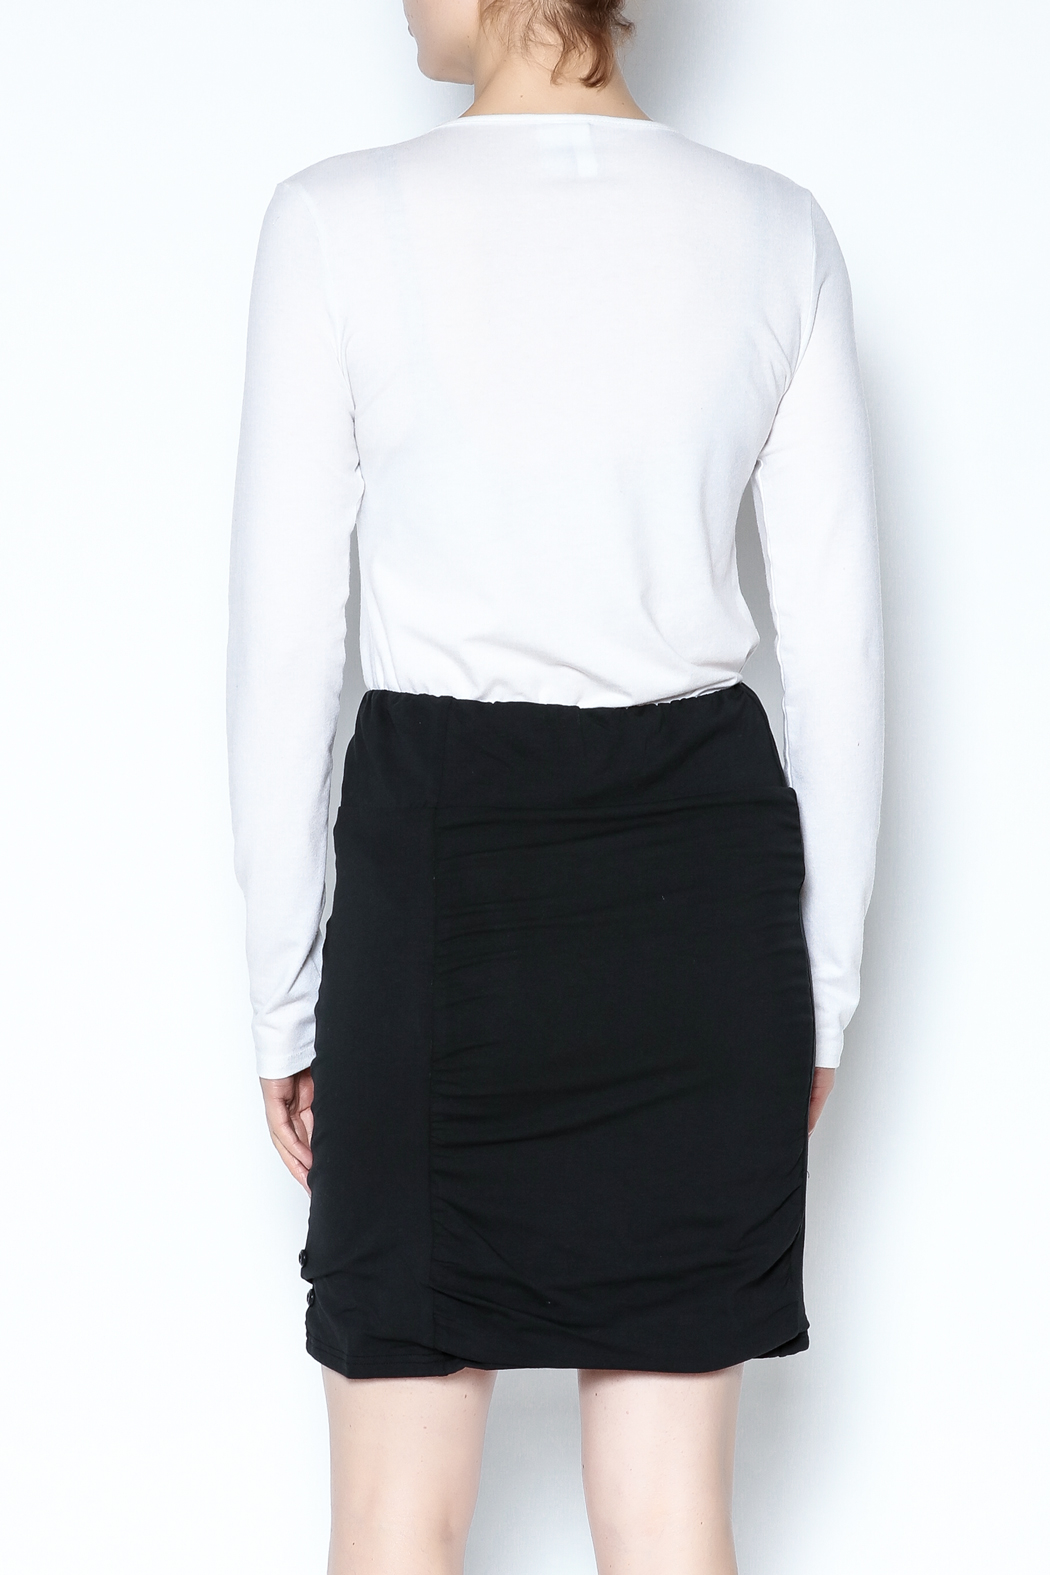 Simply Noelle Adjustable Button Skirt - Back Cropped Image